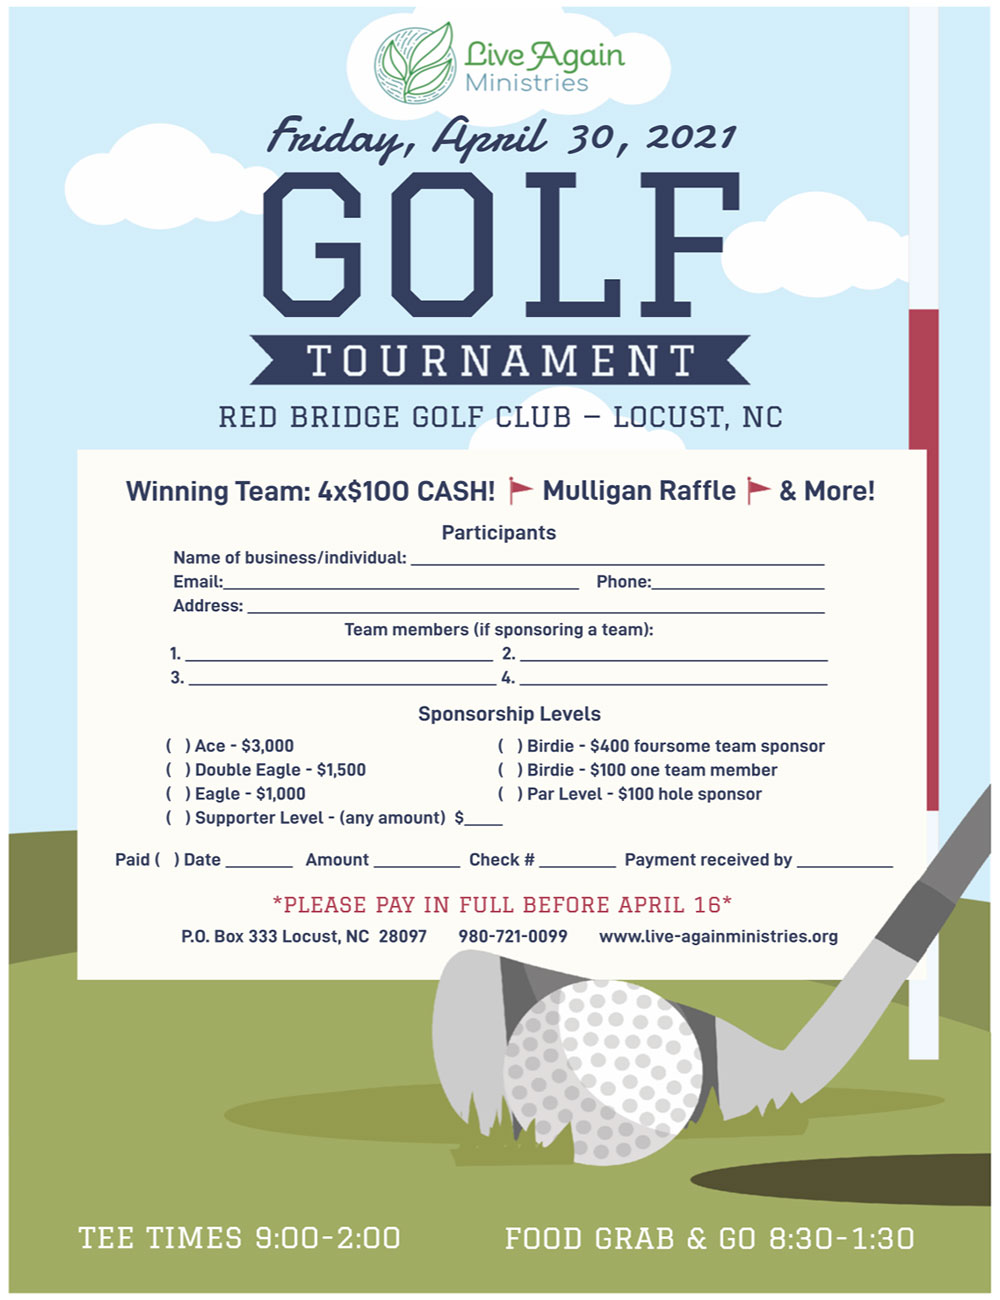 Live Again Ministries Golf Tournament